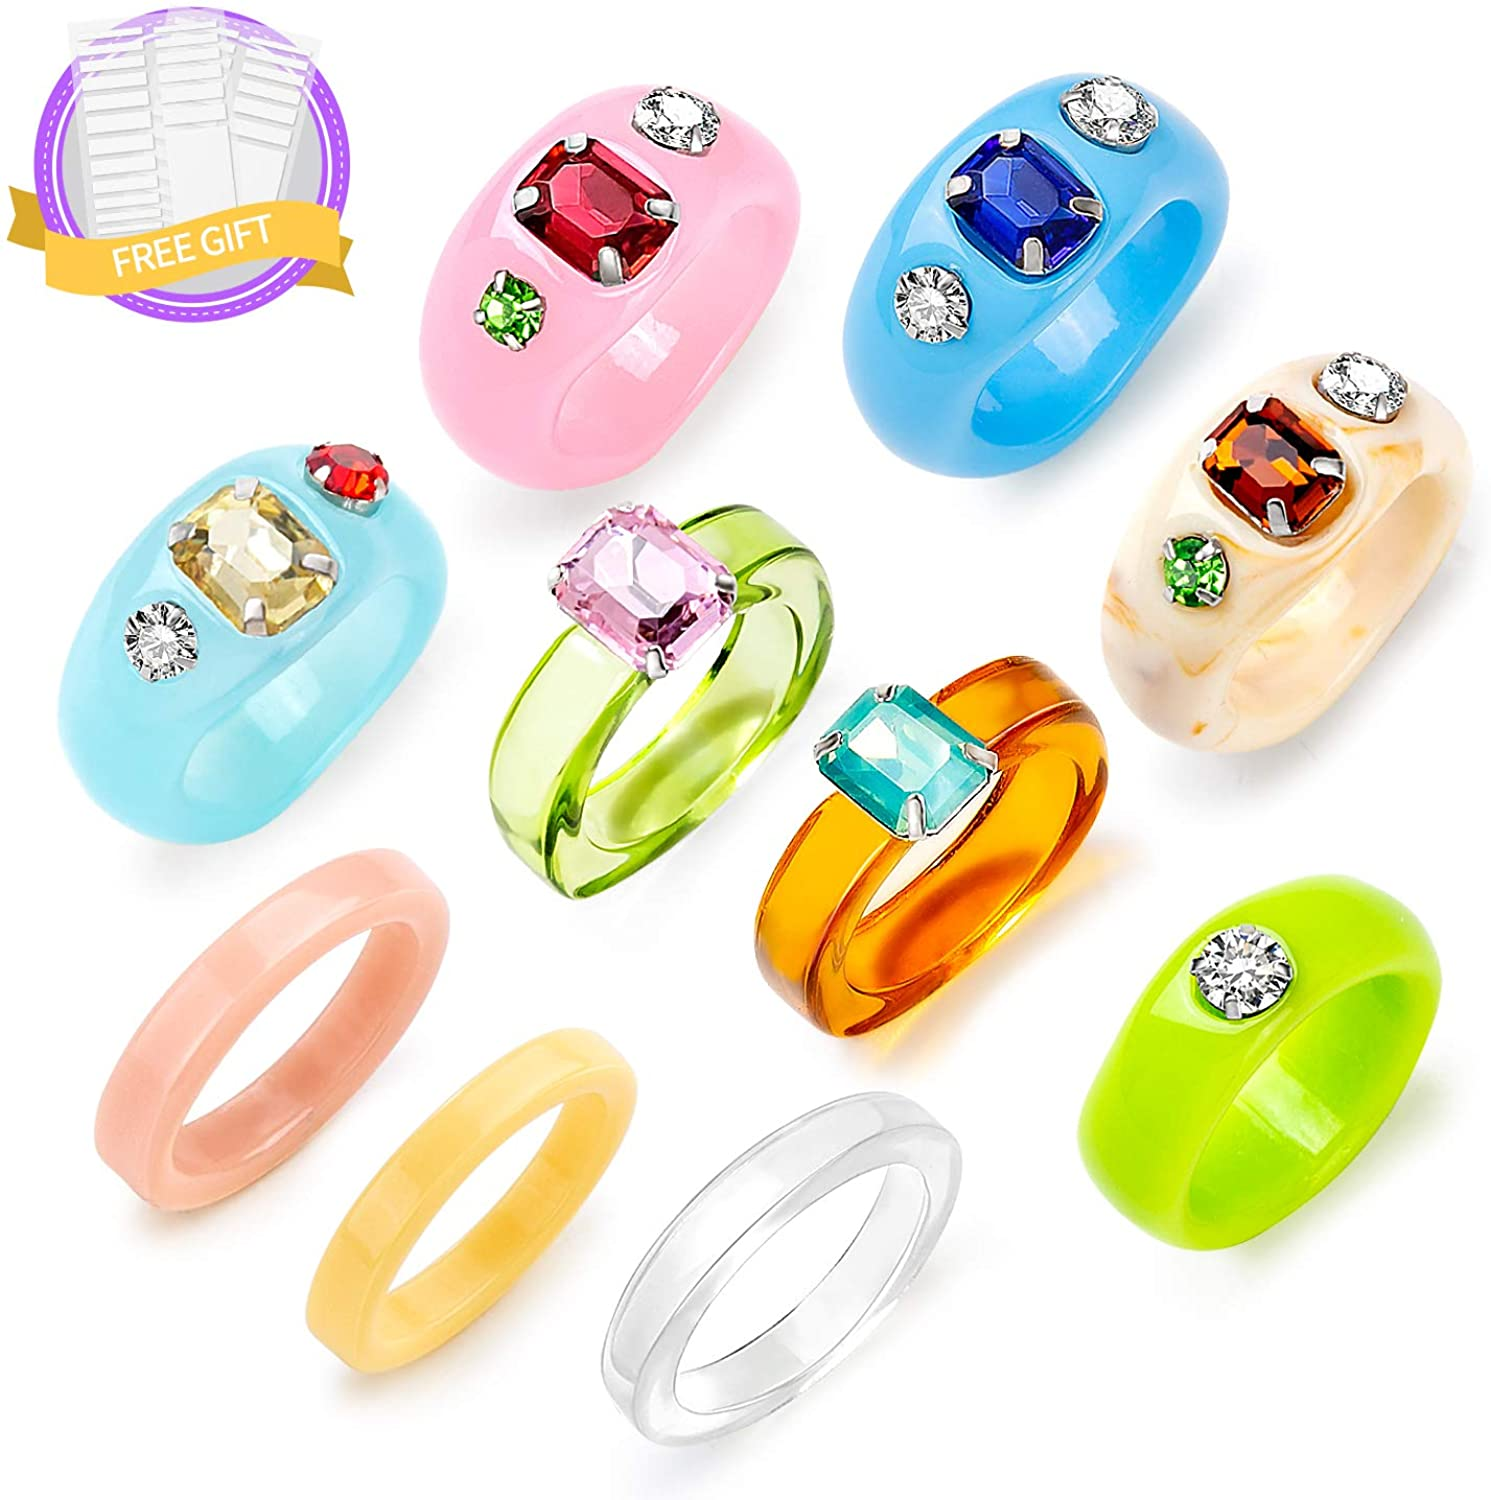 Sobly Resin Acrylic Ring for Women Teen Girls, Chunky Rings Colorful,Plastic Rings,Vintage Stacking Rings,Cute Square Transparent Rings,Trendy Jewelry